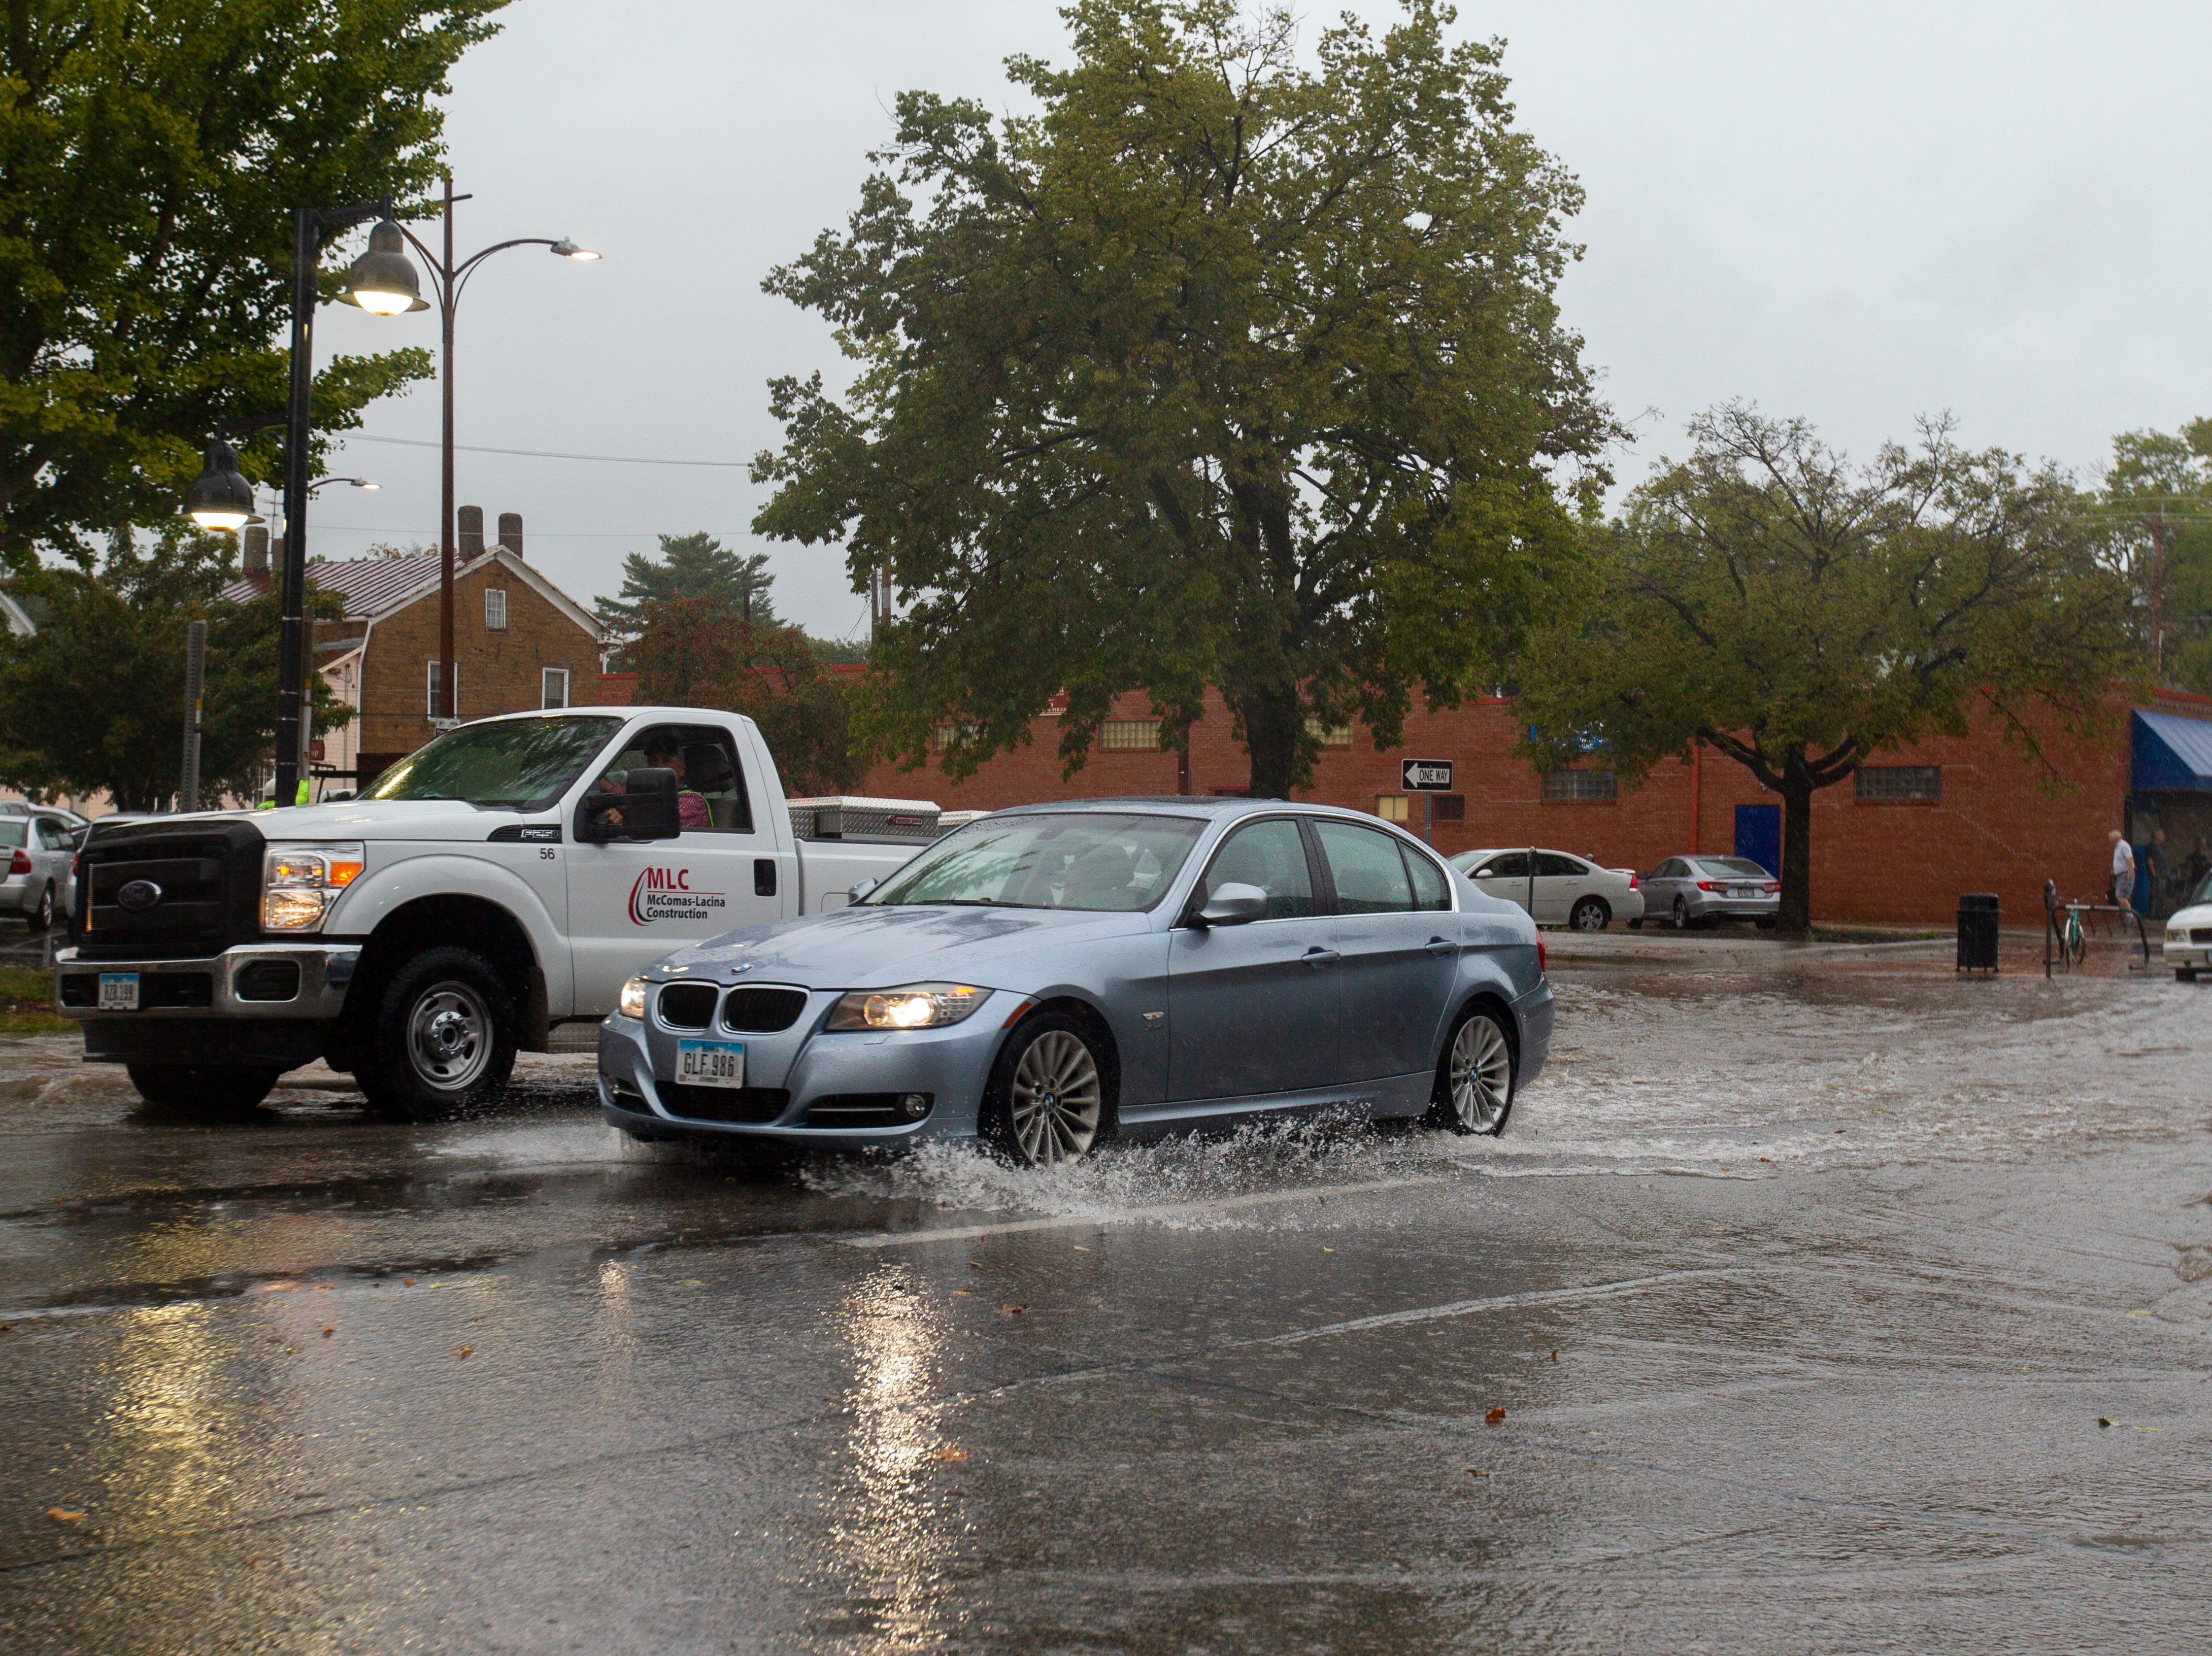 Vehicles drive through flash flooding on Tuesday, Sept. 25, 2018, along Market Street in Iowa City.